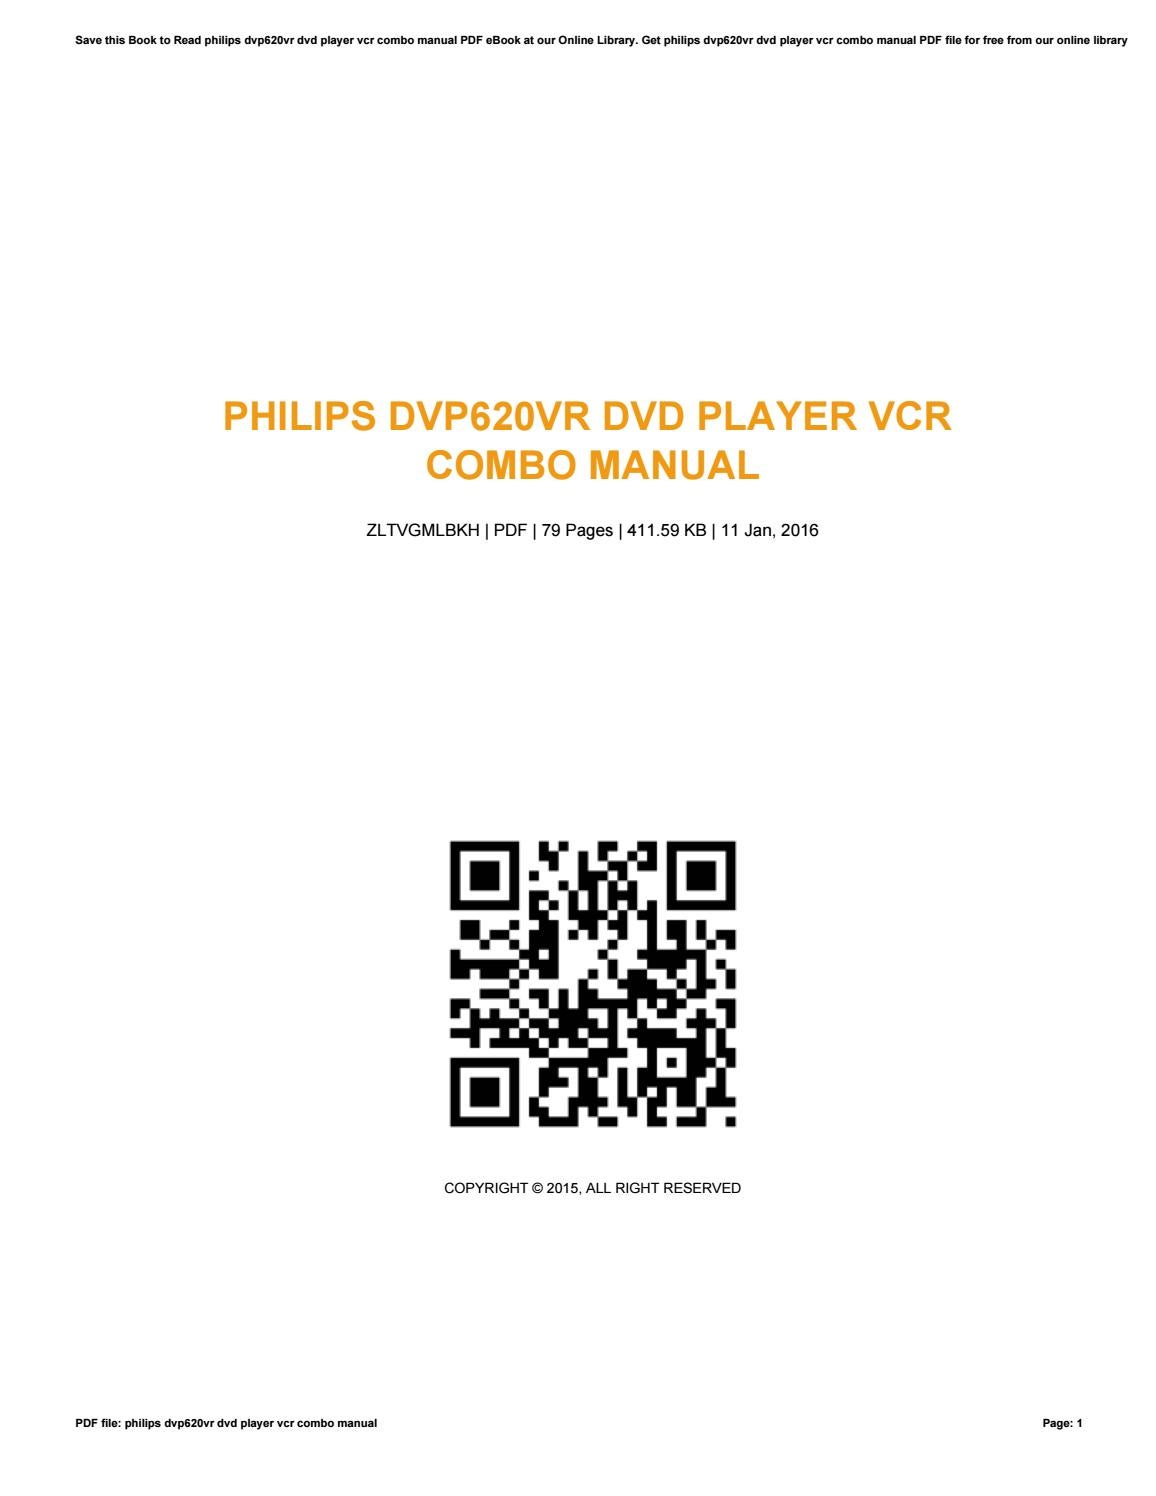 Philips dvp620vr dvd player vcr combo manual by